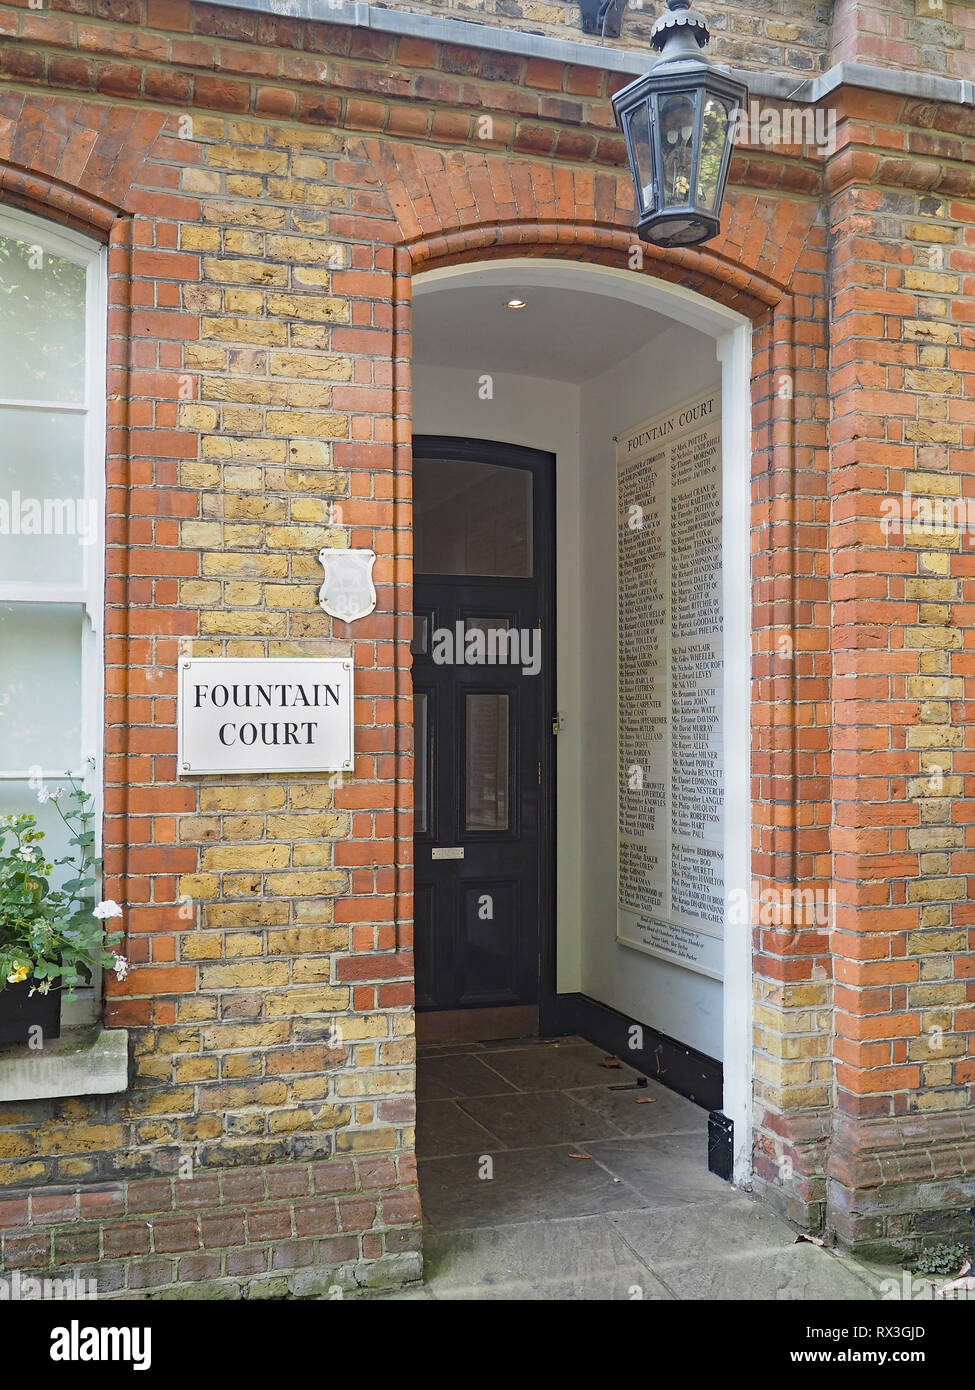 LONDON - SEPTEMBER 2016:   Fountain Court in the Middle Temple has the offices many of England's most eminent lawyers in a building dating from the 16 - Stock Image